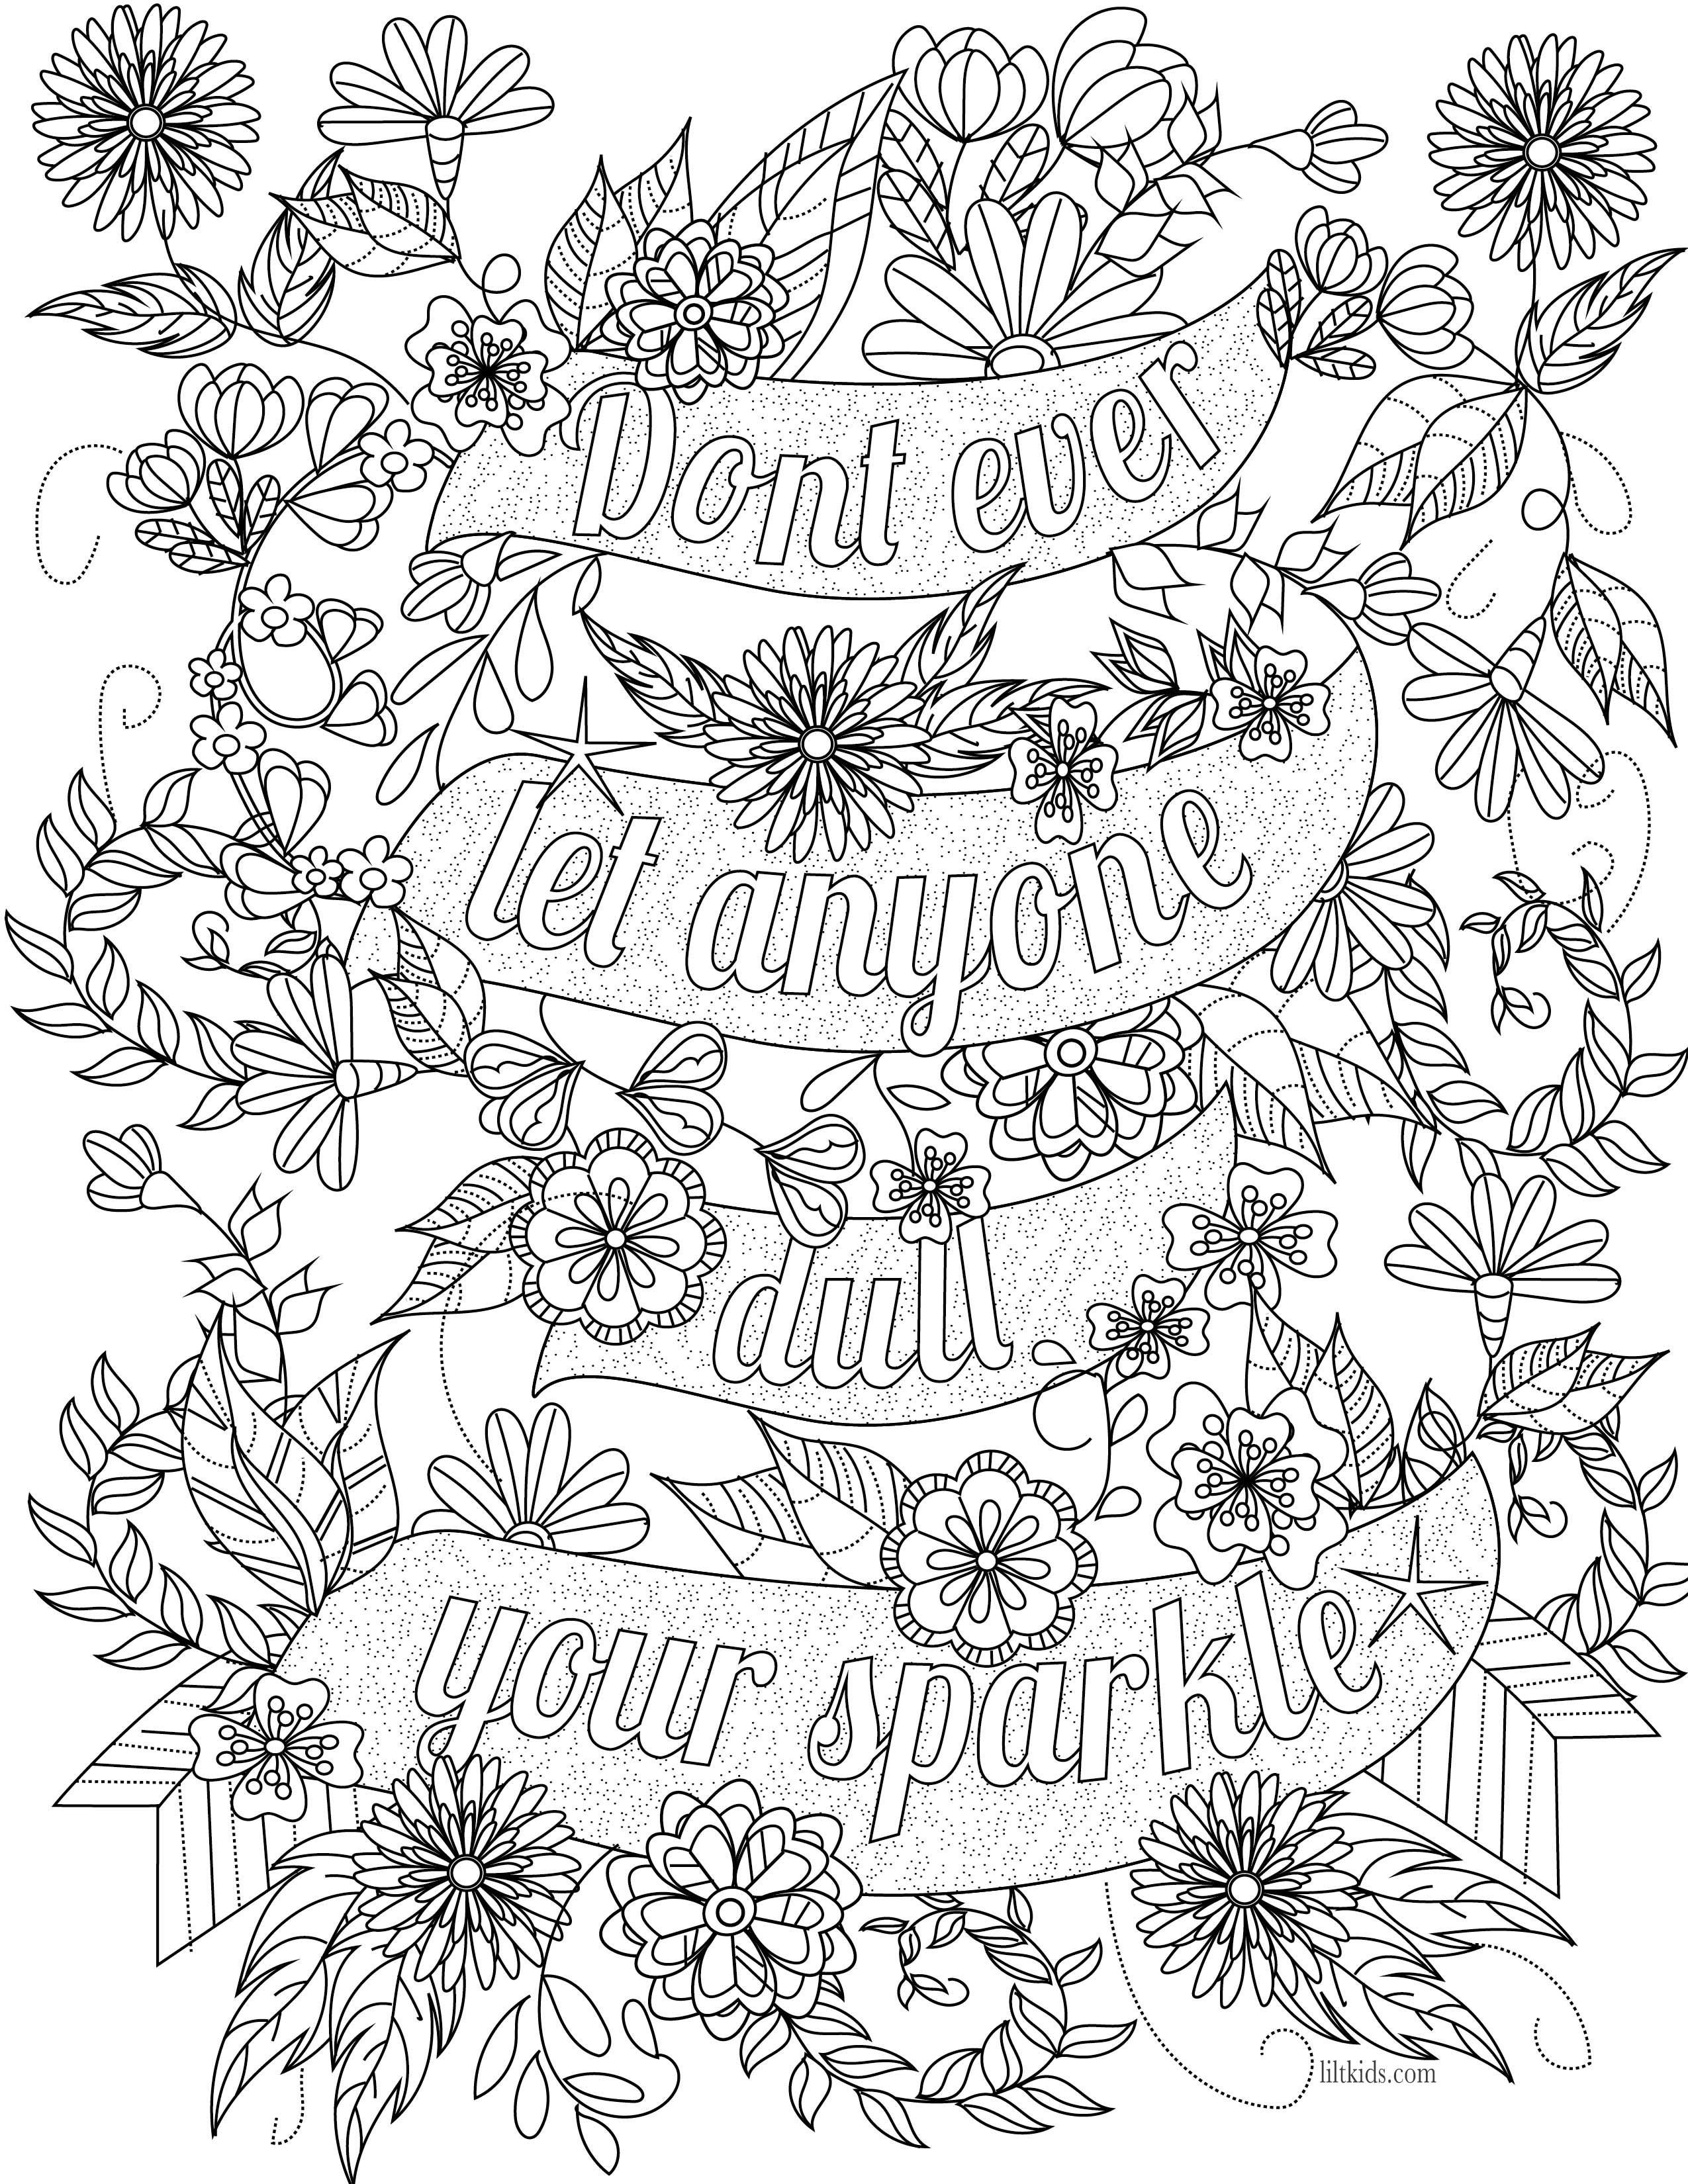 free adult coloring apps | printables | Pinterest | Free adult ...